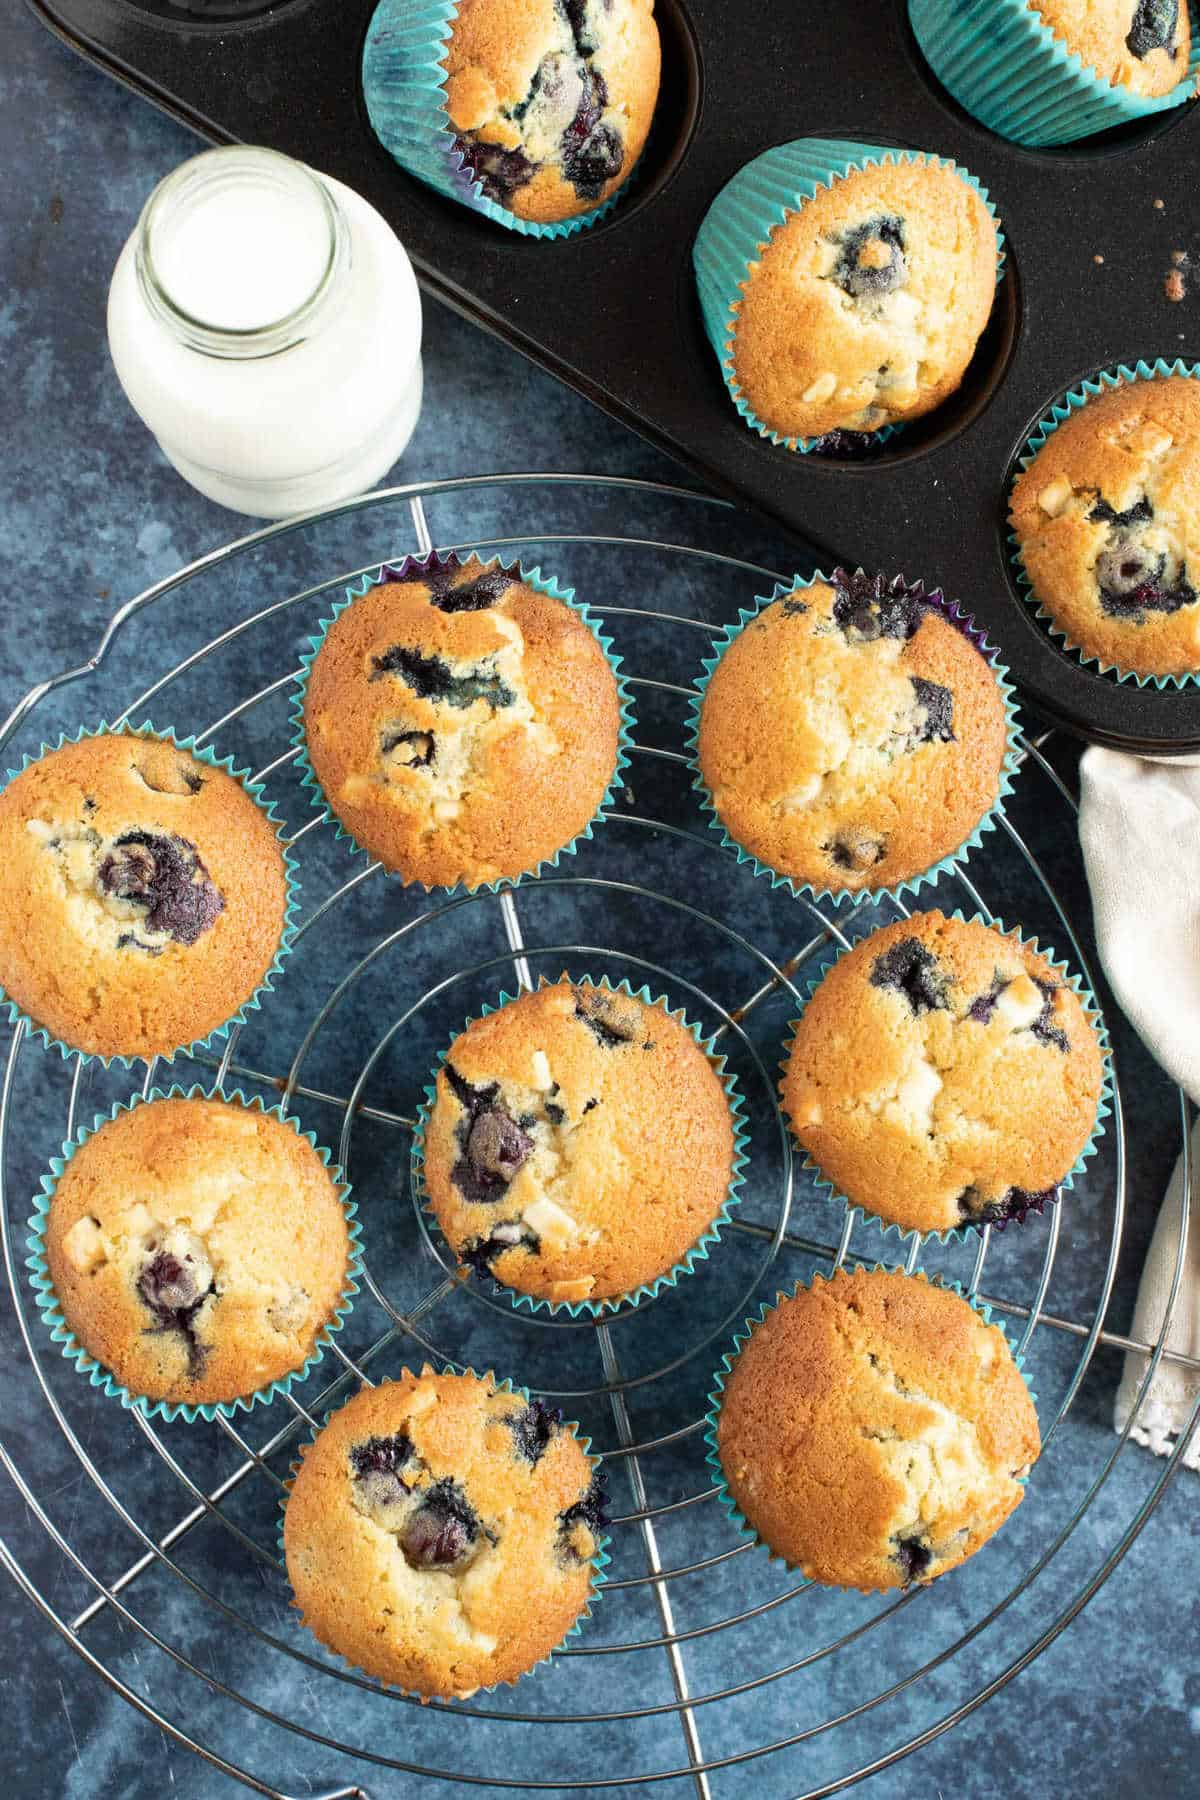 Blueberry muffins on a wire cooling rack.